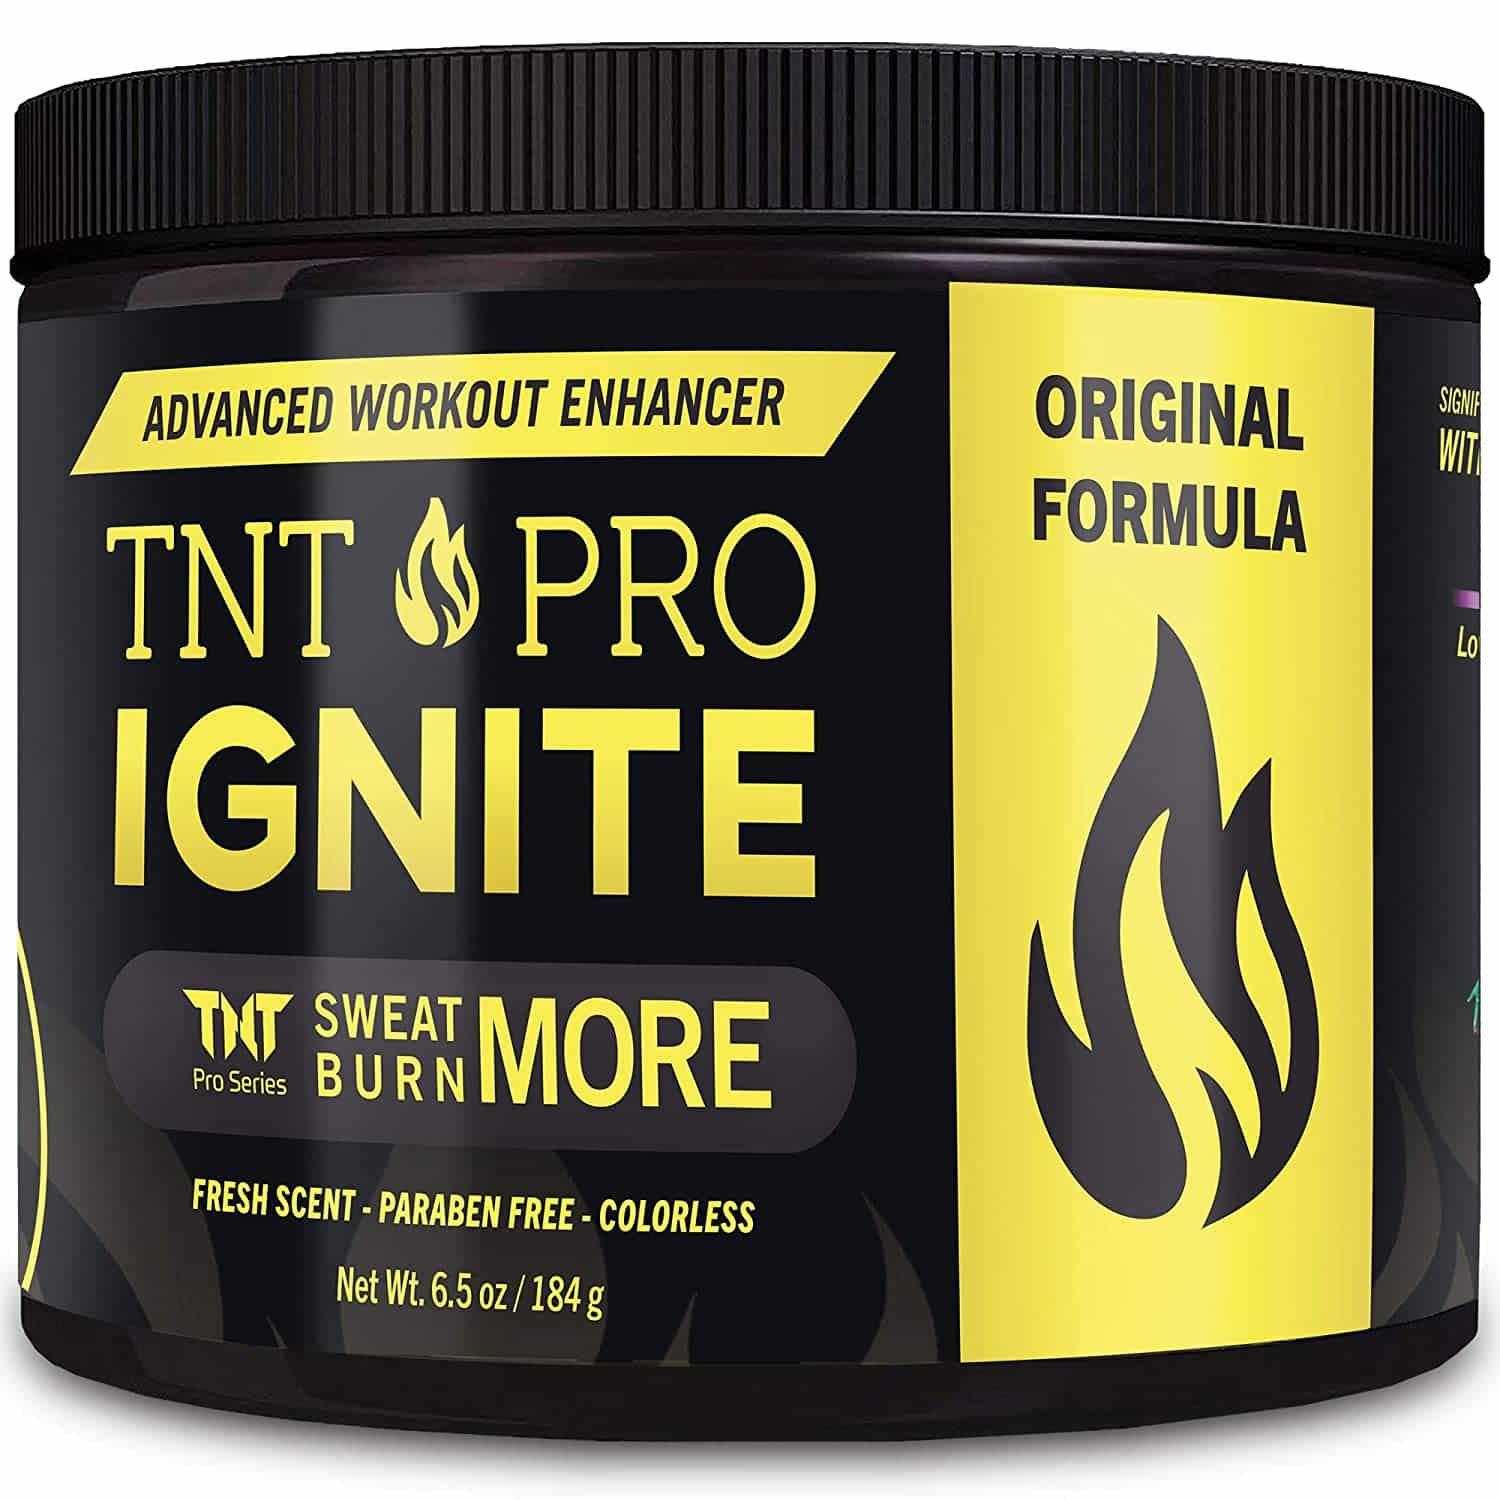 TNT Pro Series Fat Burning Cream for Belly